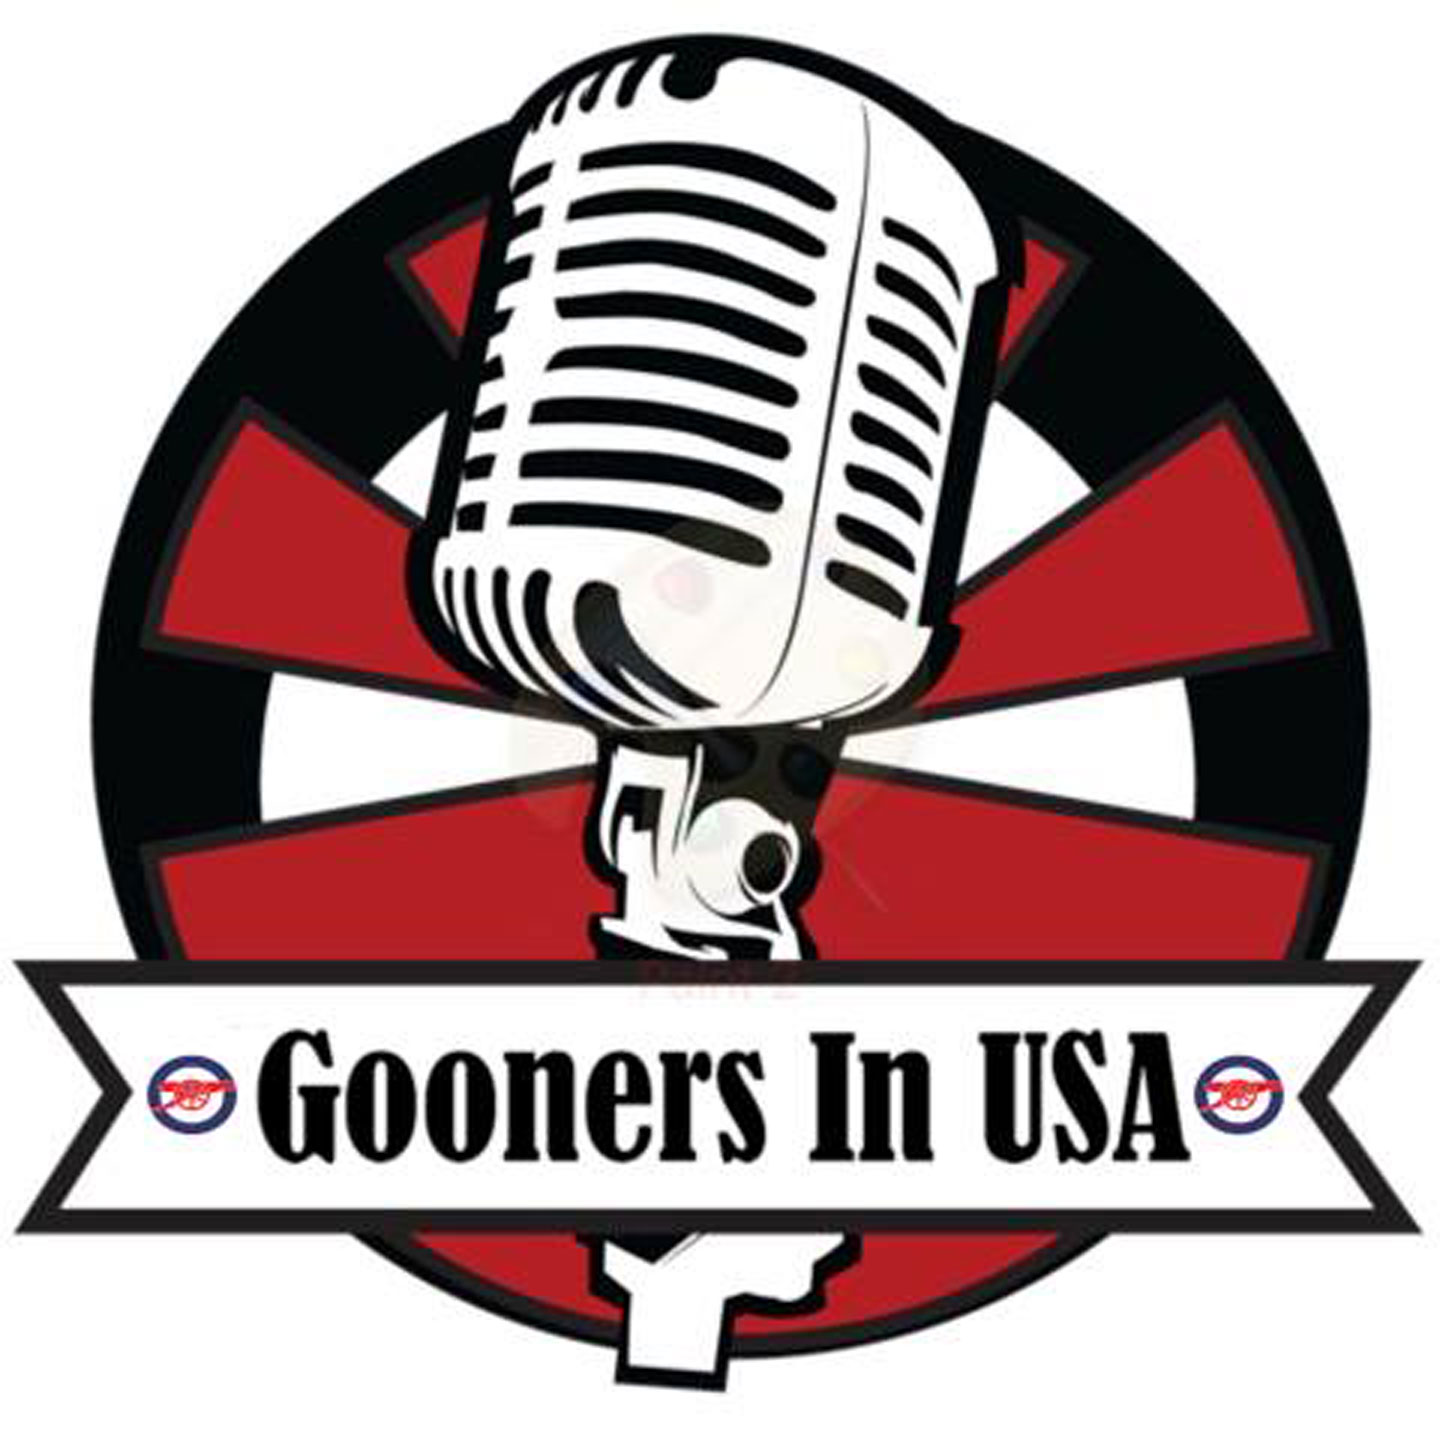 Gooners in USA - All Things Arsenal